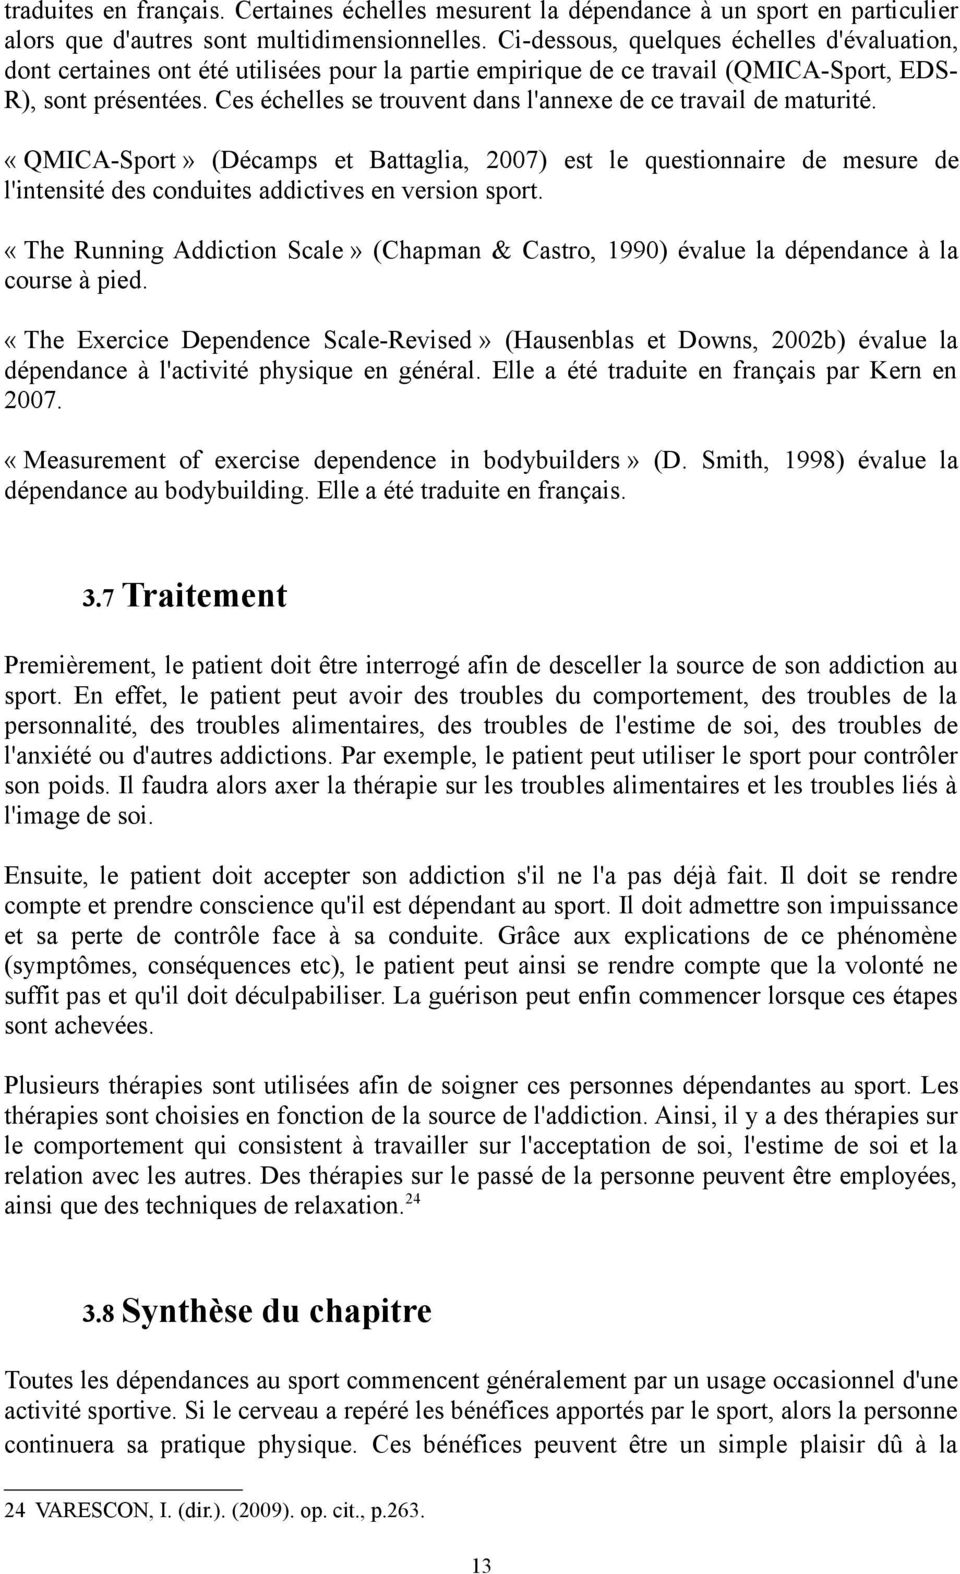 Ces échelles se trouvent dans l'annexe de ce travail de maturité. «QMICA-Sport» (Décamps et Battaglia, 27) est le questionnaire de mesure de l'intensité des conduites addictives en version sport.